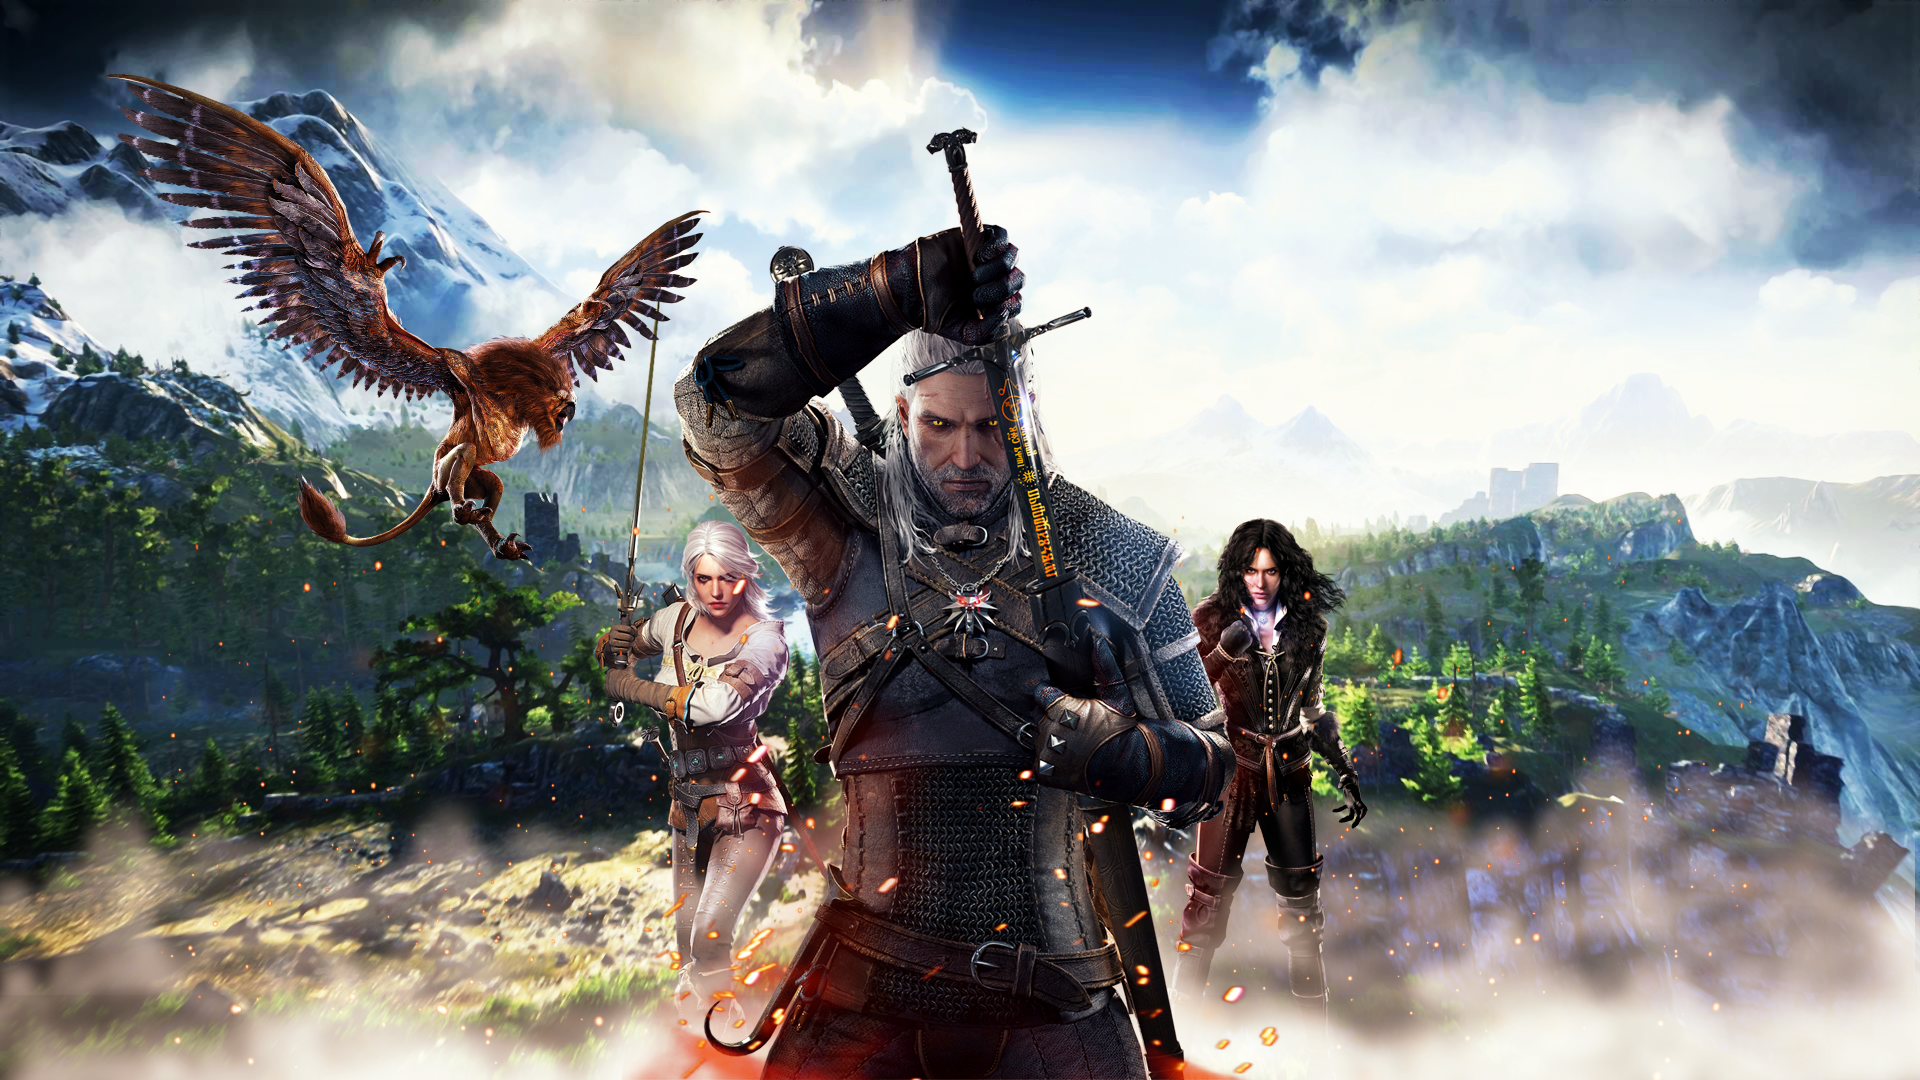 General 1920x1080 The Witcher The Witcher 3 Wild Hunt